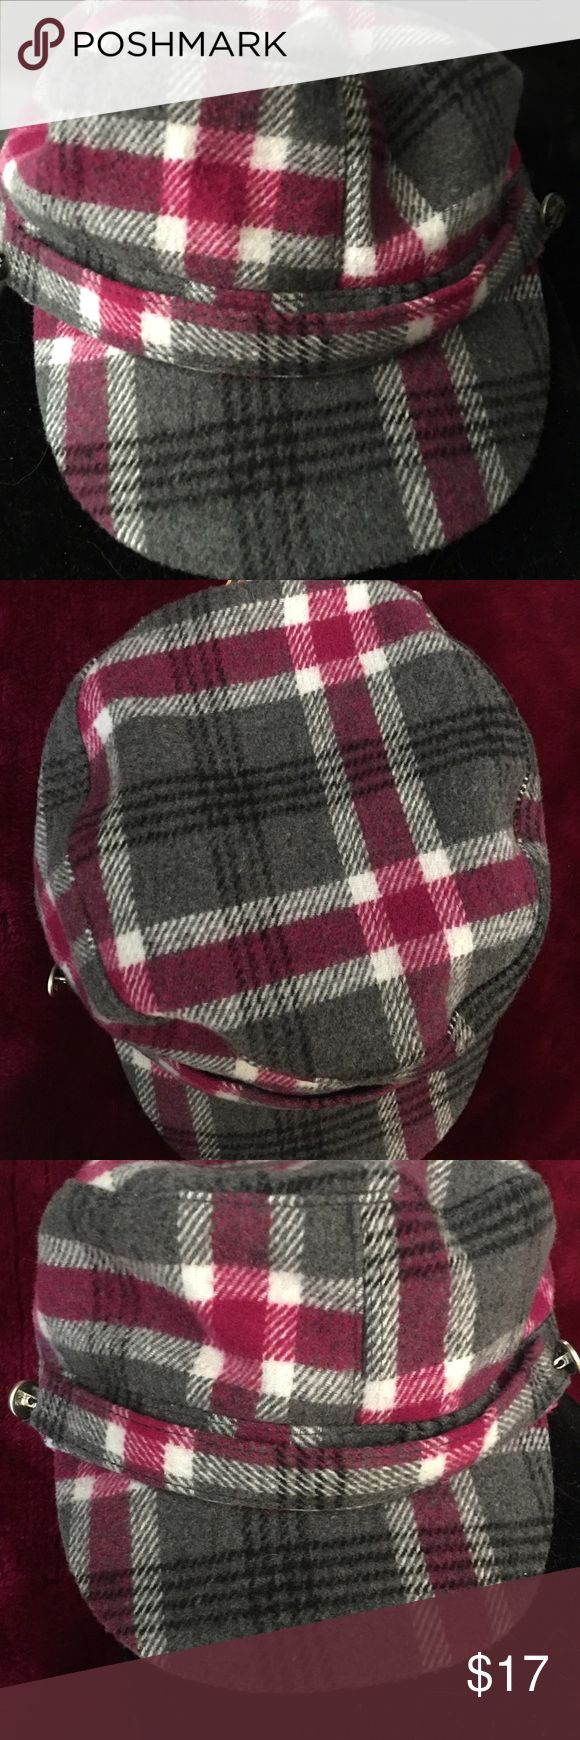 Fleece Plaid Cadet Cap All Fleece Burgundy, gray & white plaid cadet cap. 100% polyester. One size. Scala Pronto Accessories Hats